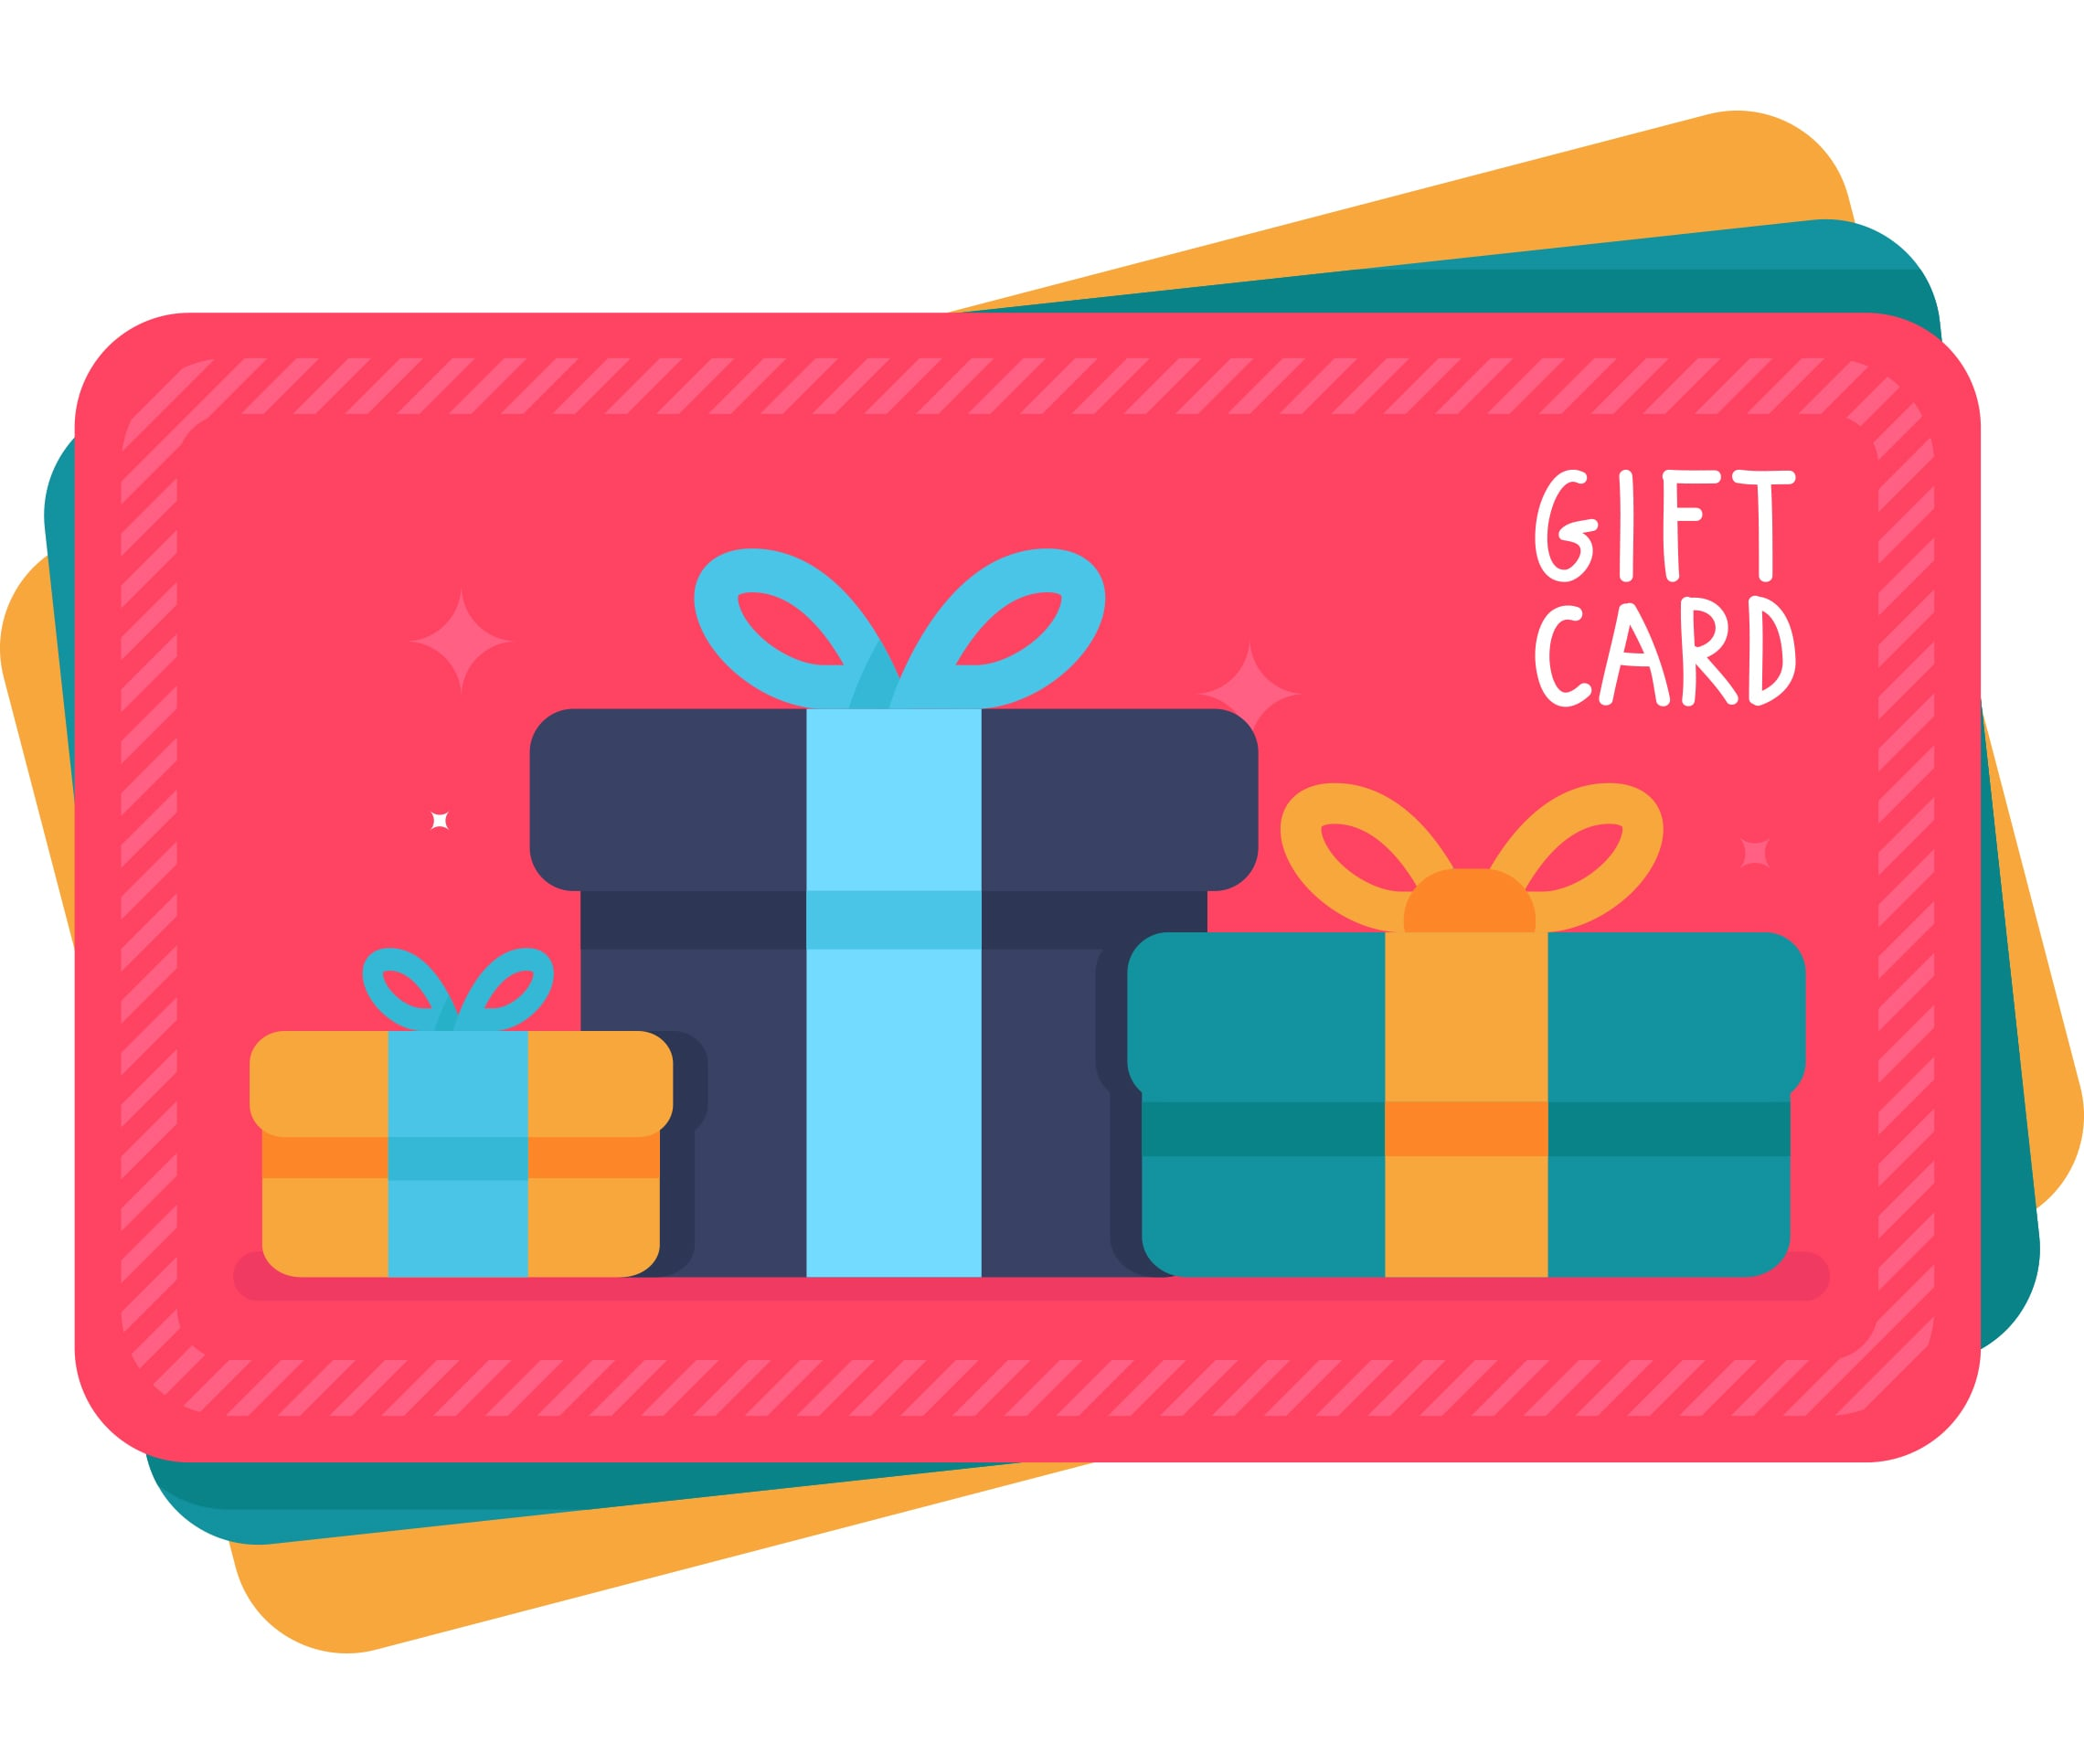 Store-wide Discount Gift Cards ($15, $25, $50)